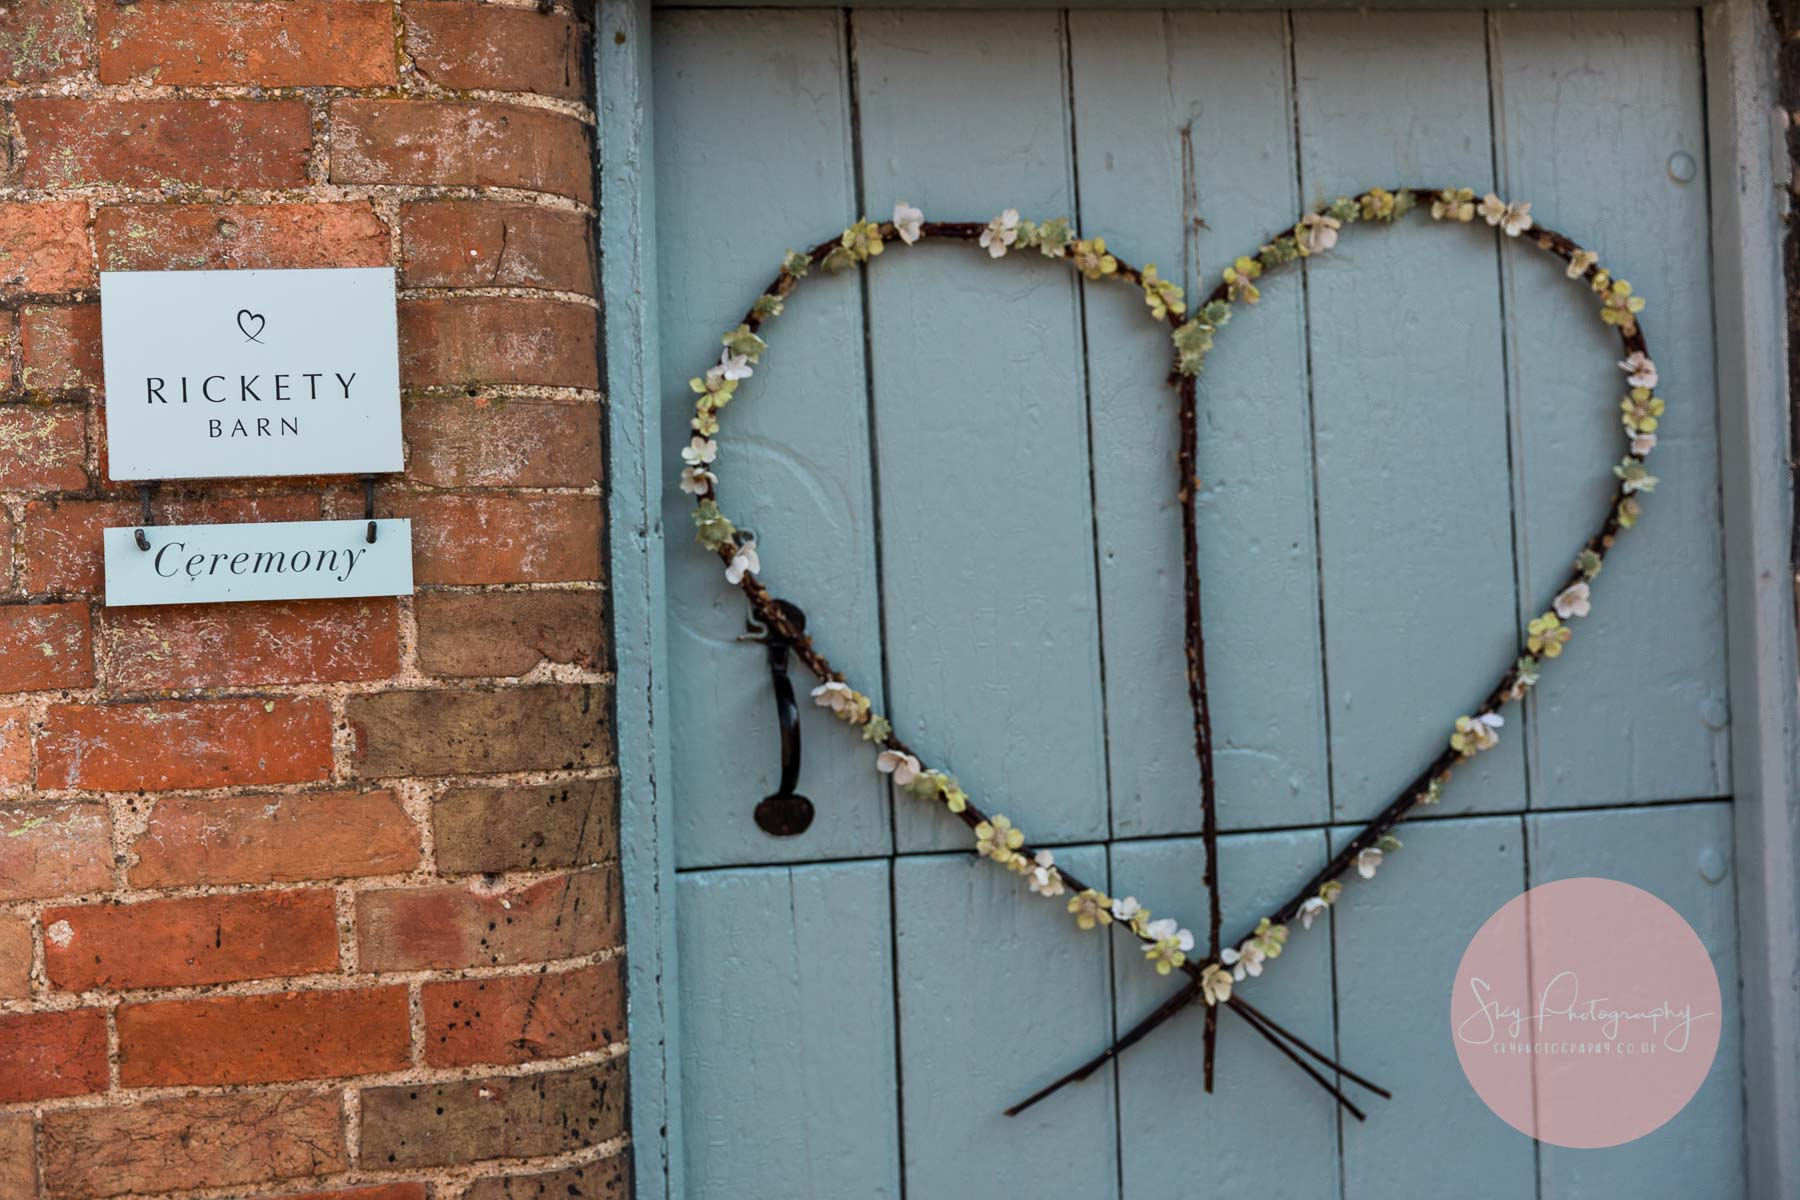 Flower love heart at the rickety barn door in bassmead manor